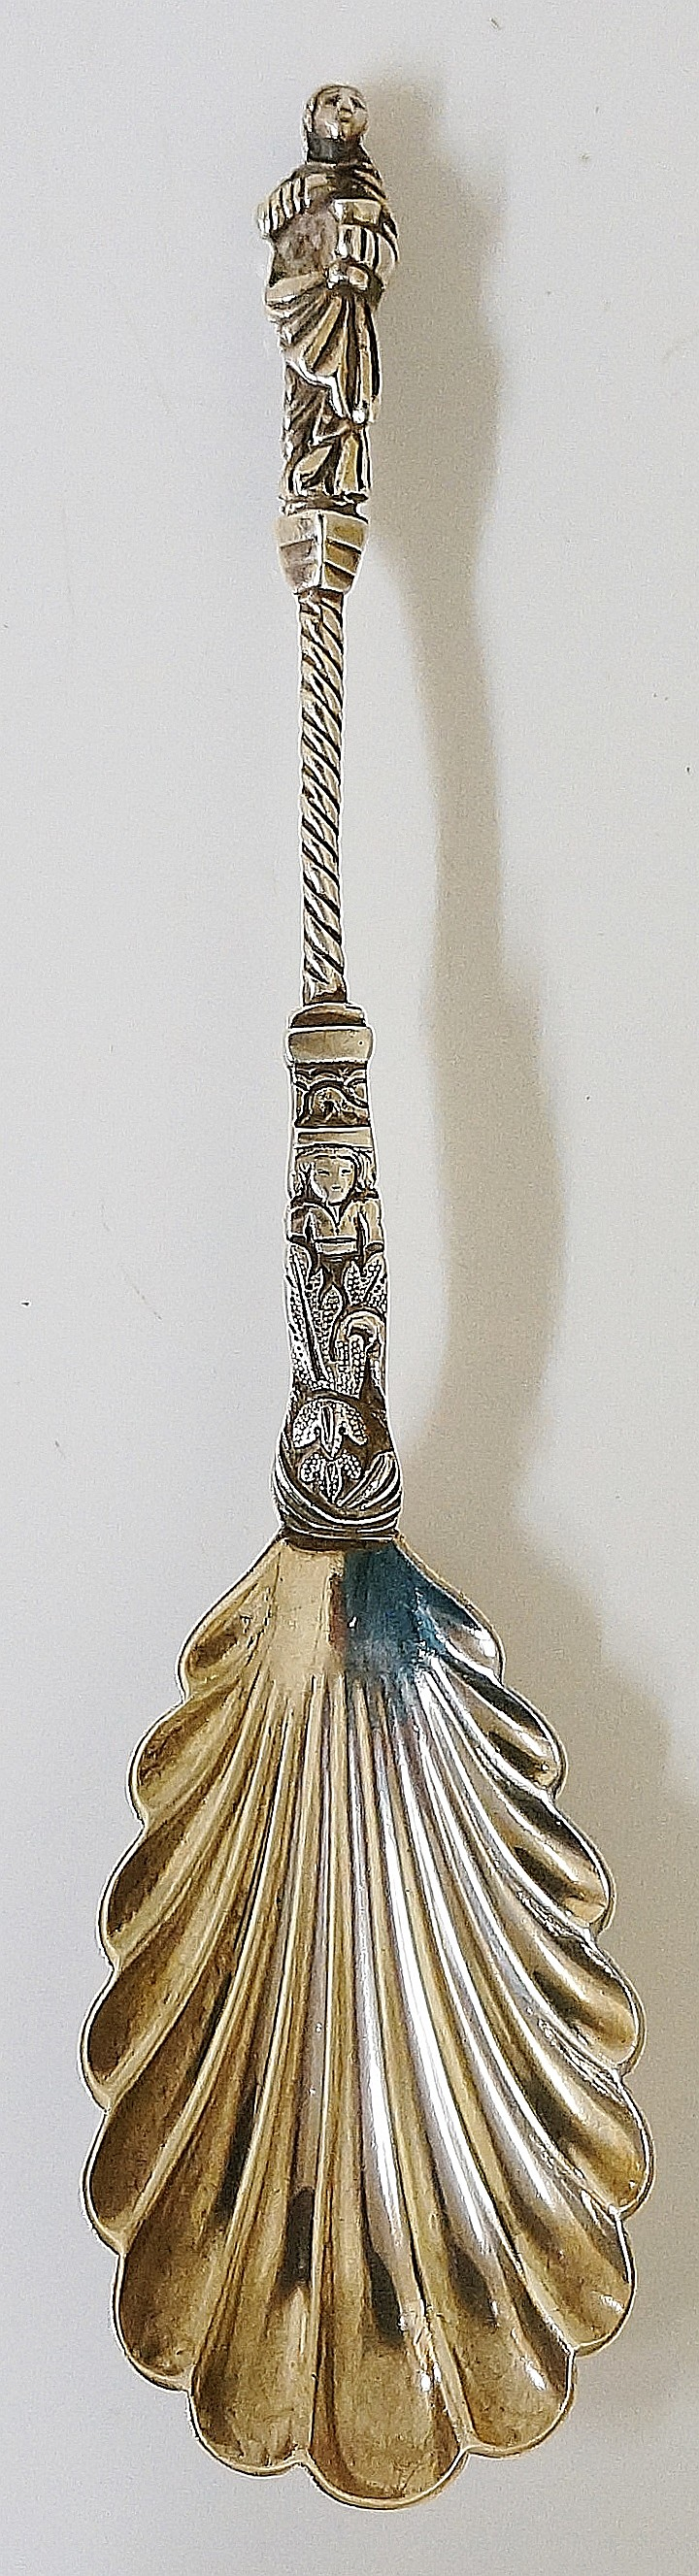 A Victorian silver apostle spoon of St John holding the cup of sorrow above